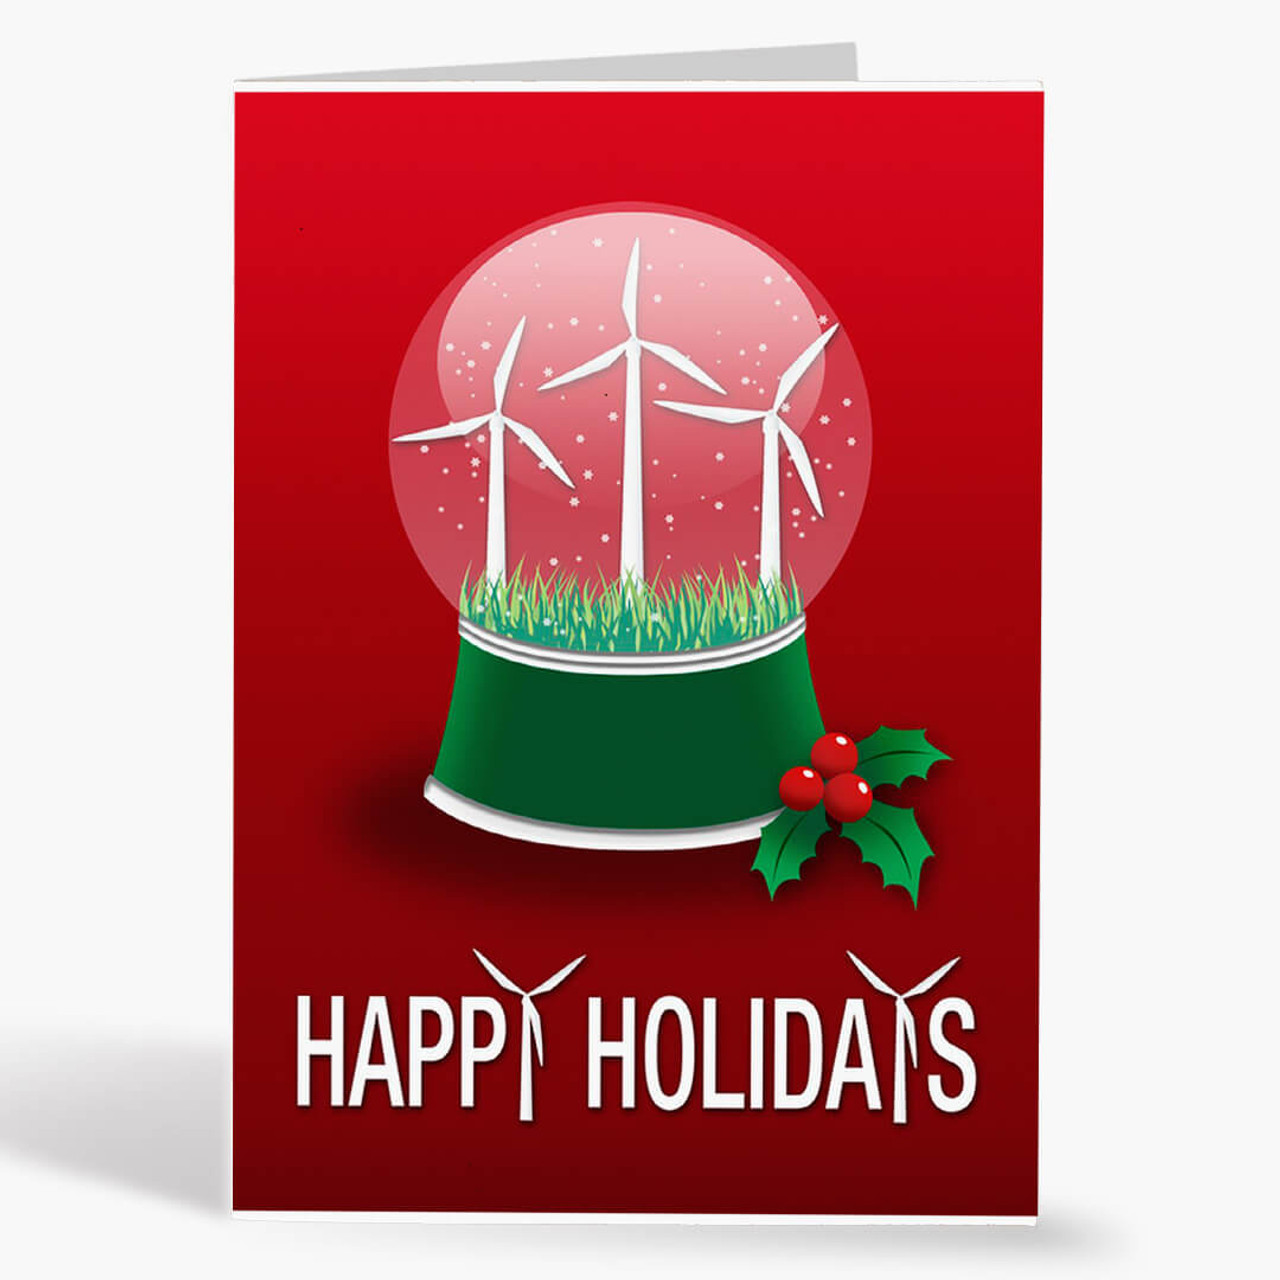 Turbine Snow Globe Christmas Card